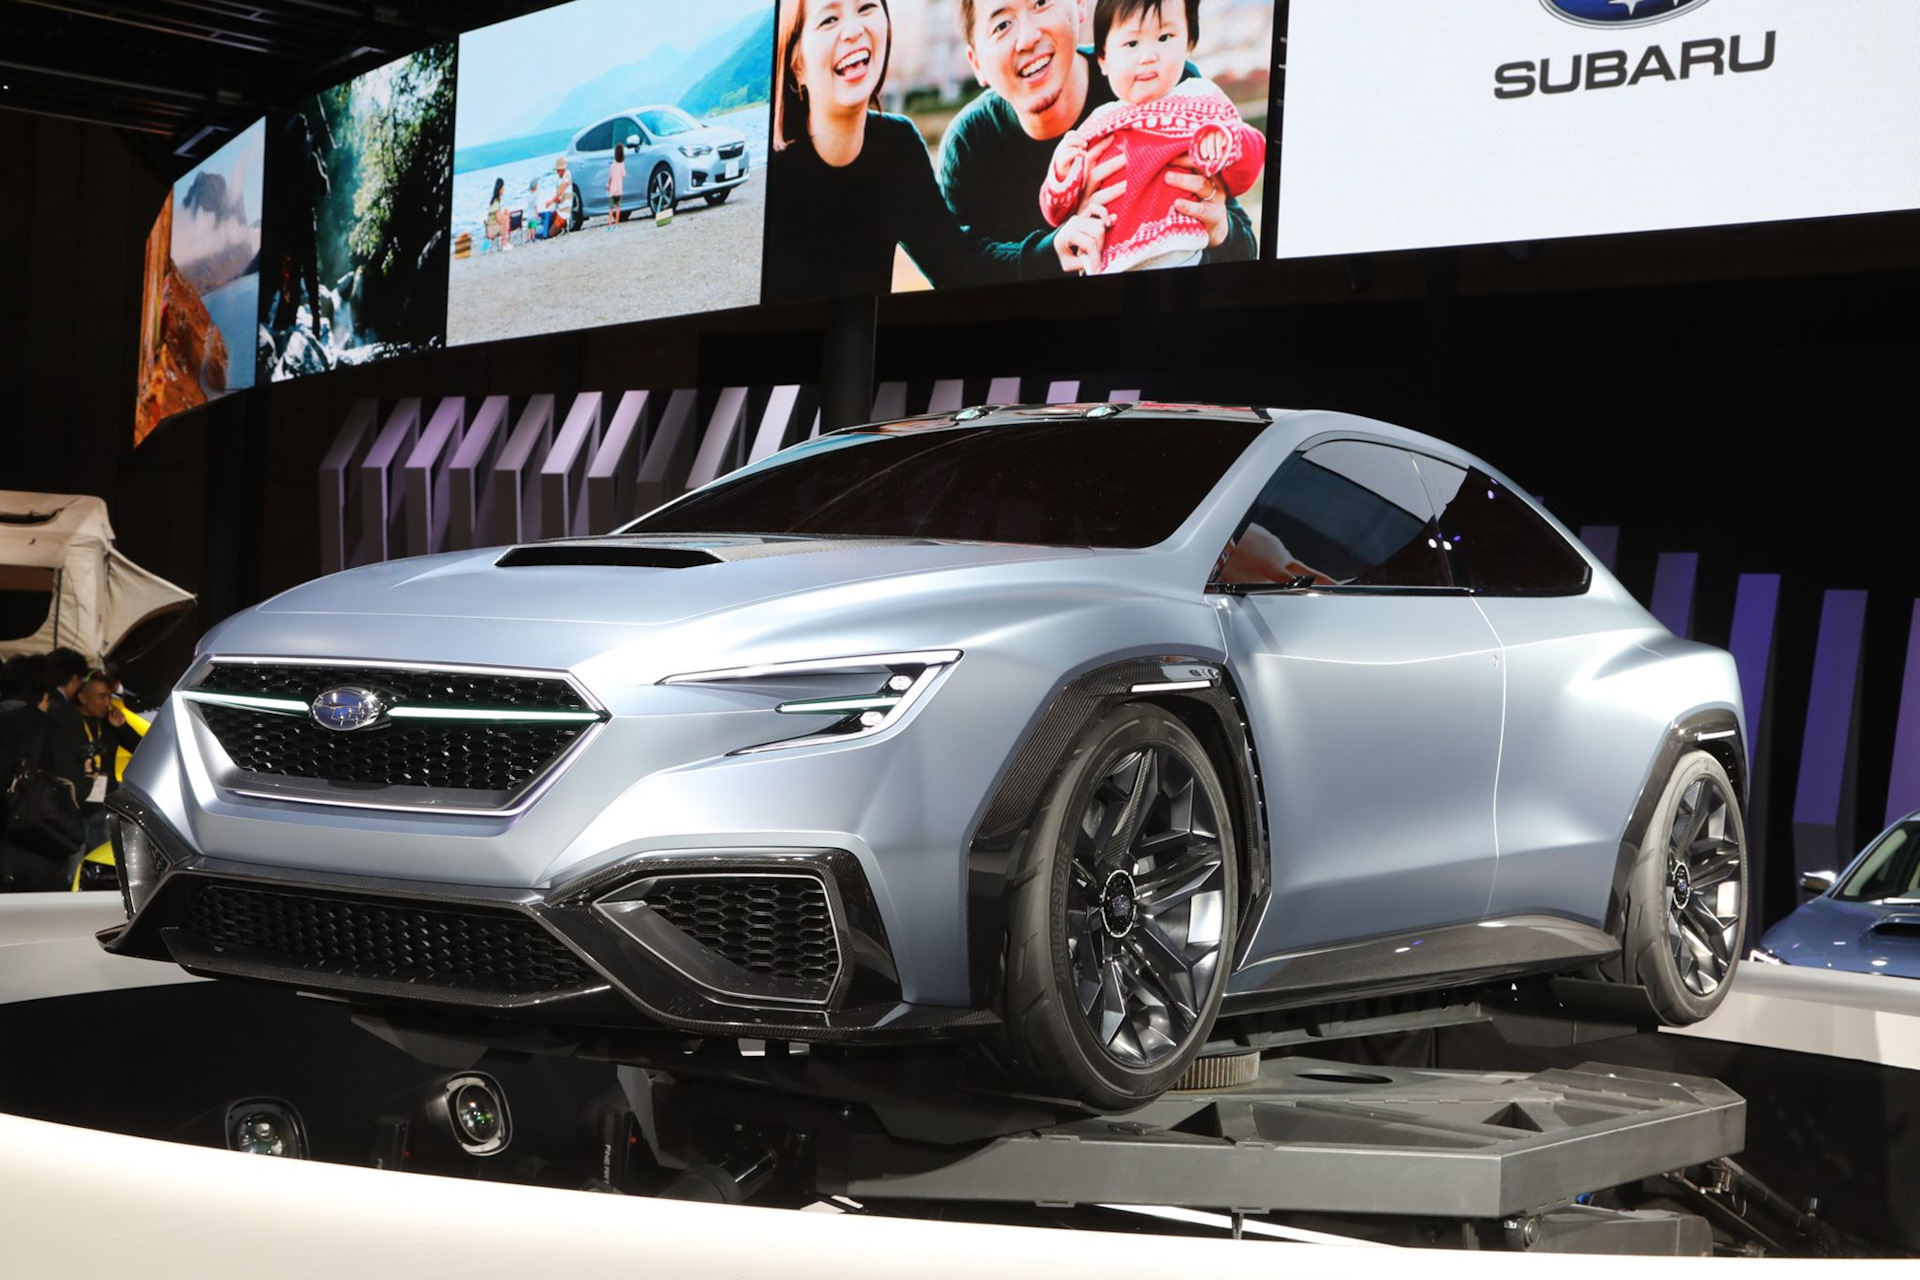 Subaru is working hard to bring the next generation of the WRX and WRX STI to the market. Latest rumors insist that both models will outperform the previous generation by a wide margin and rival the Mercedes-AMG A45 S.